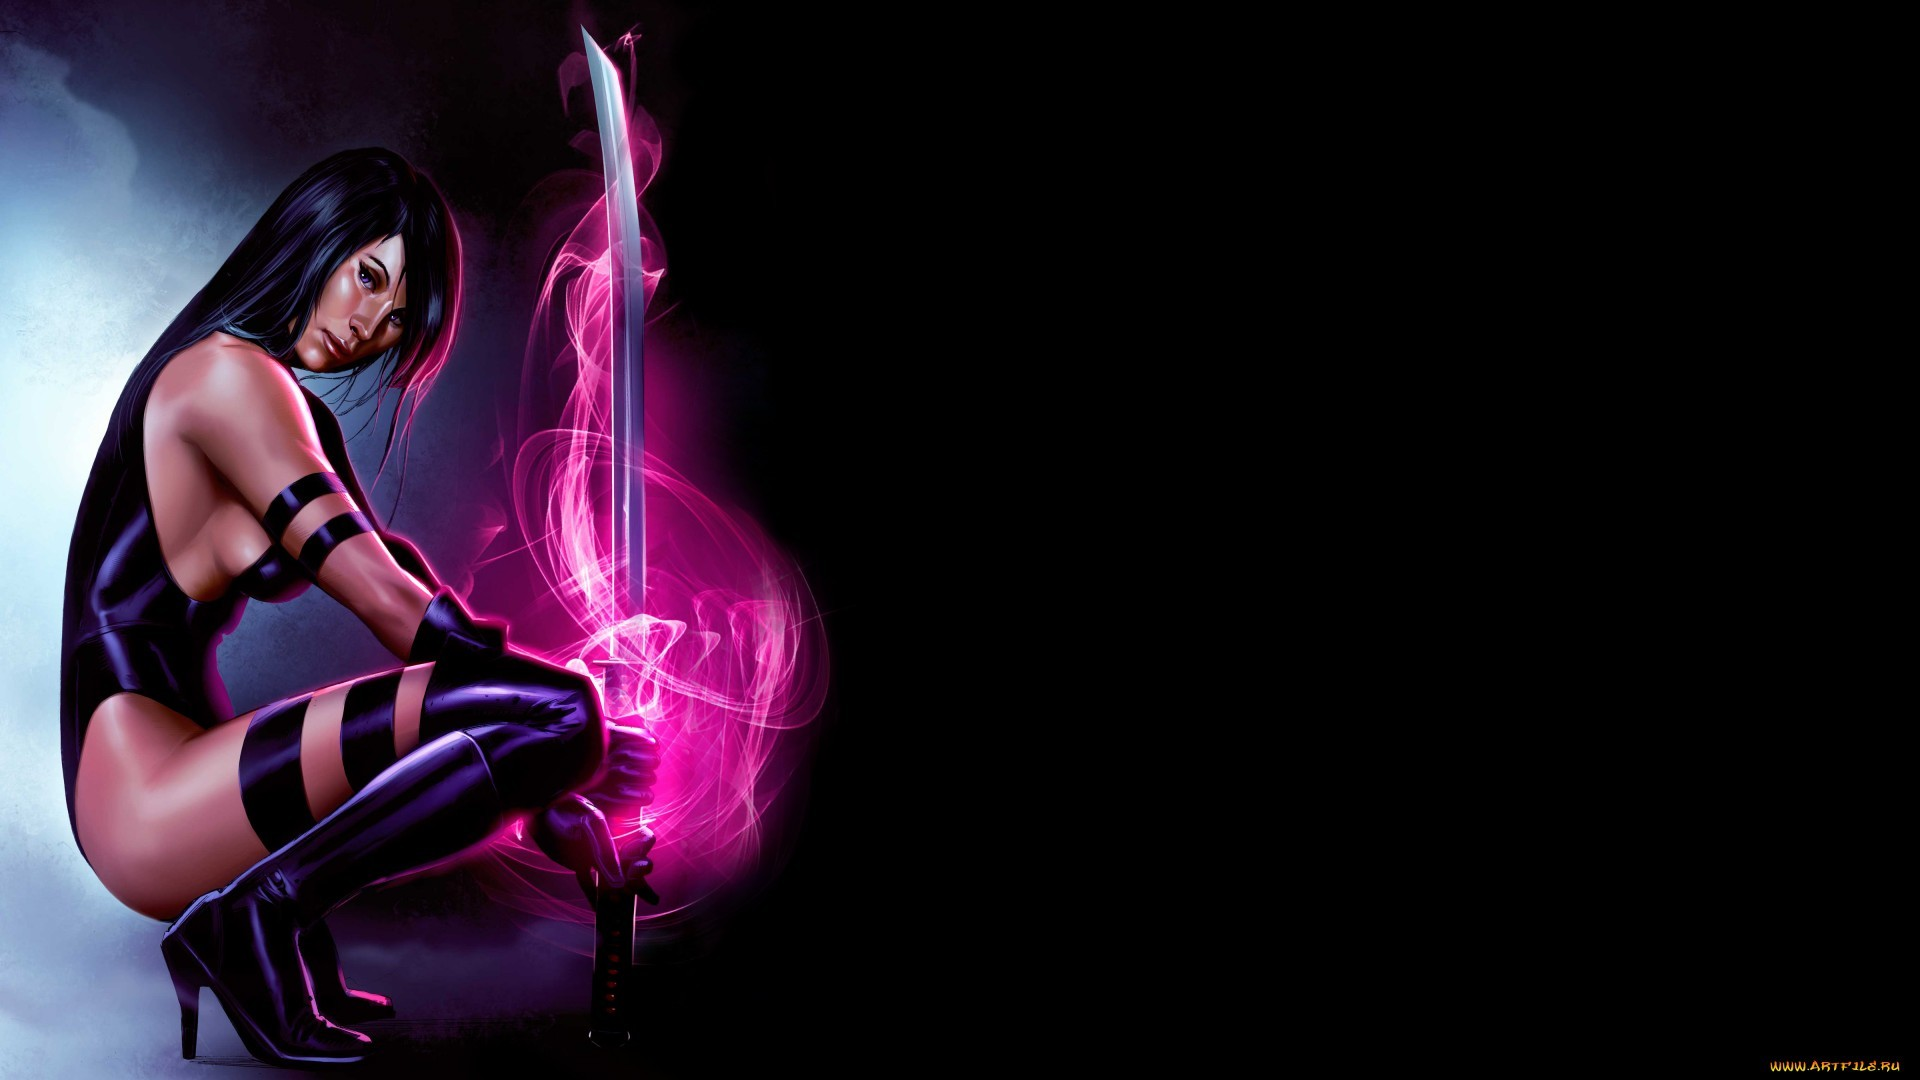 Psylocke Wallpaper HD 74 Images